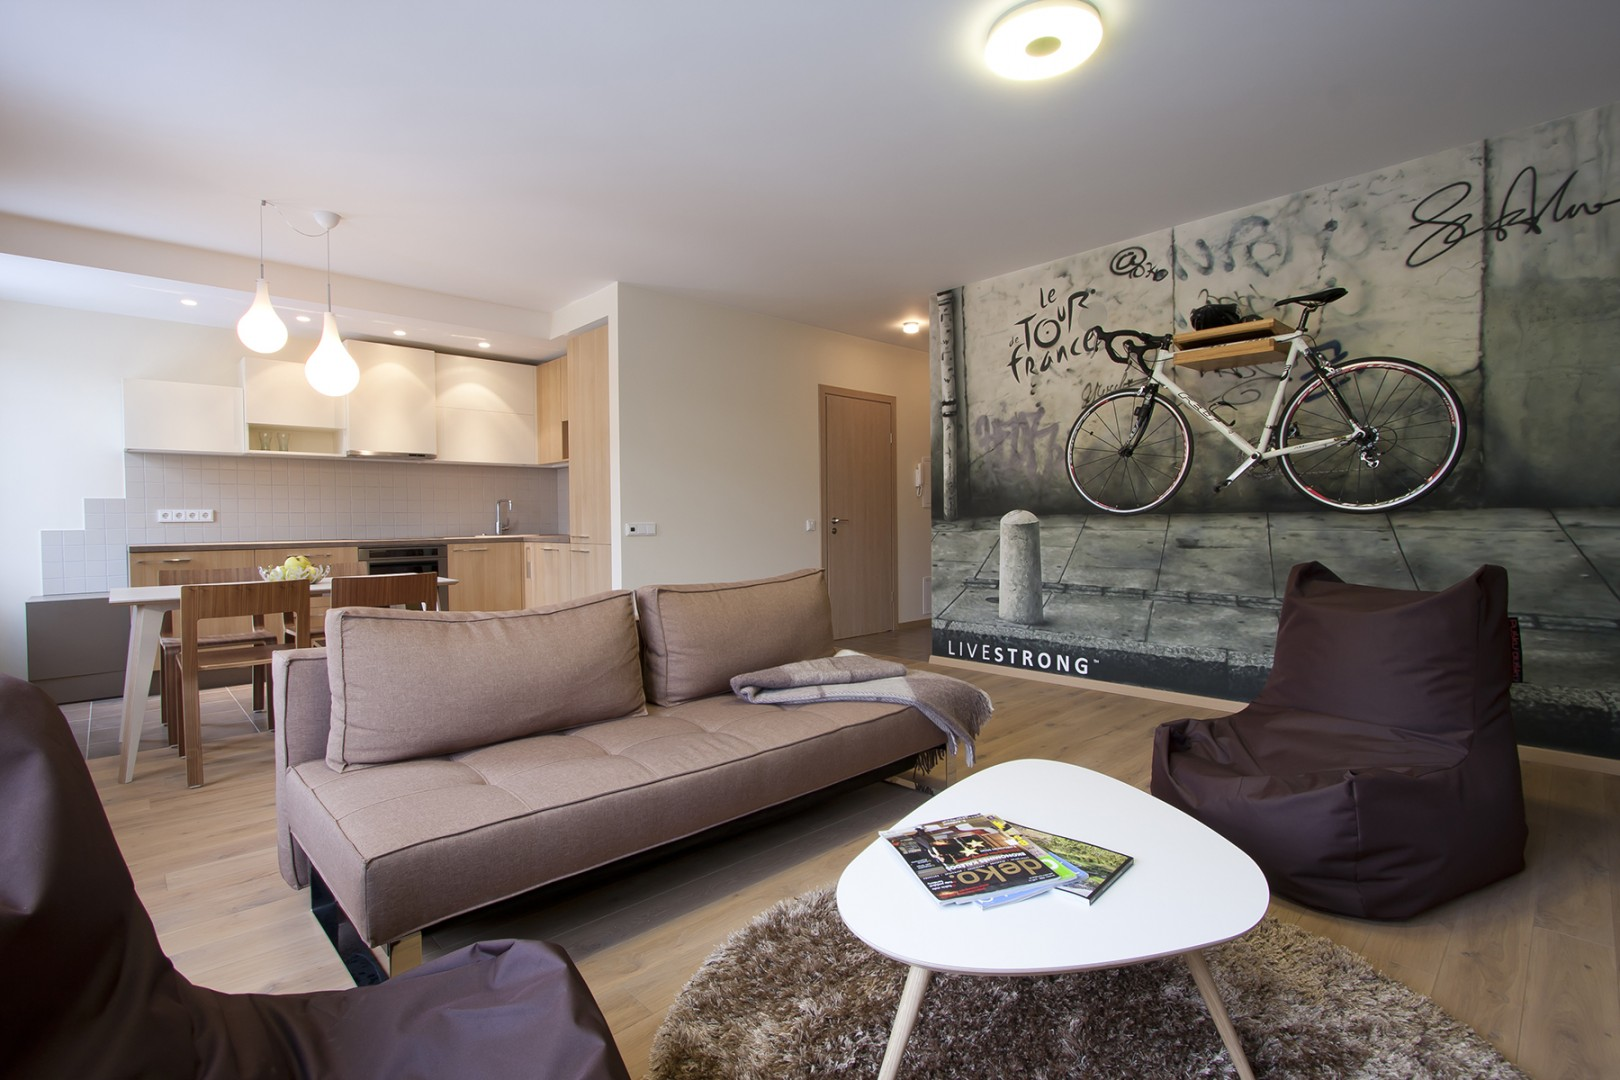 APARTMENT WITH BIKE INTERIOR